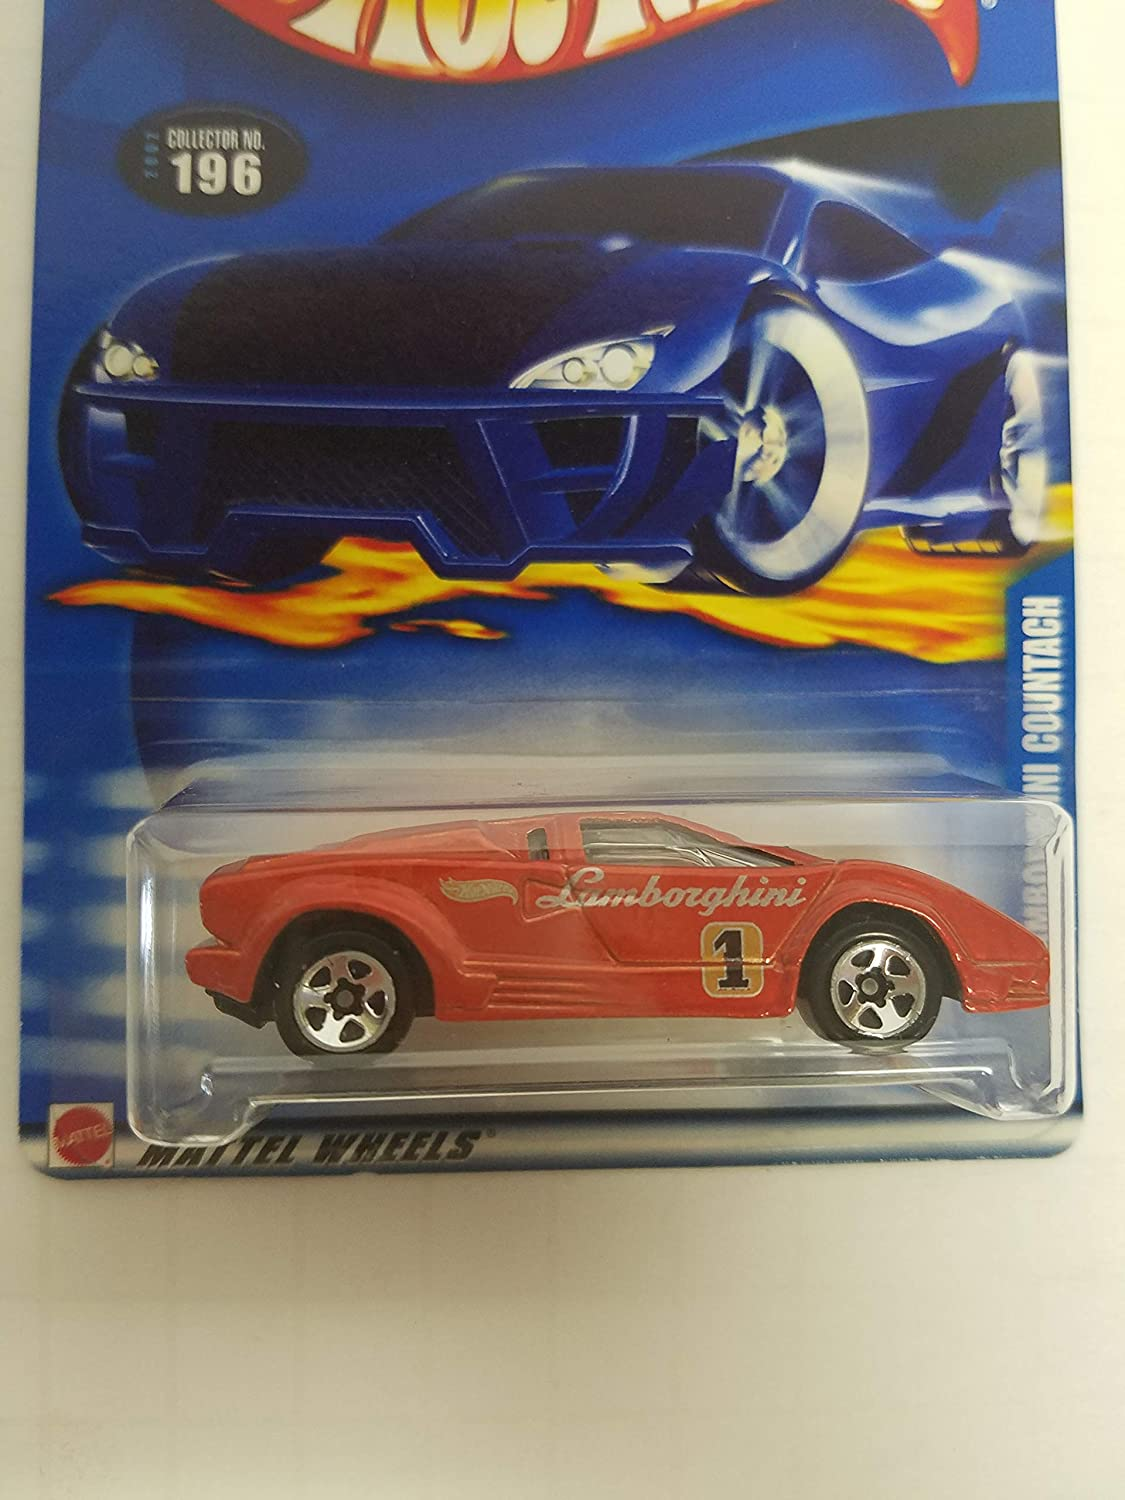 Lambourghini Countach Hot Wheels 2002 diecast 1/64 scale car No. 196